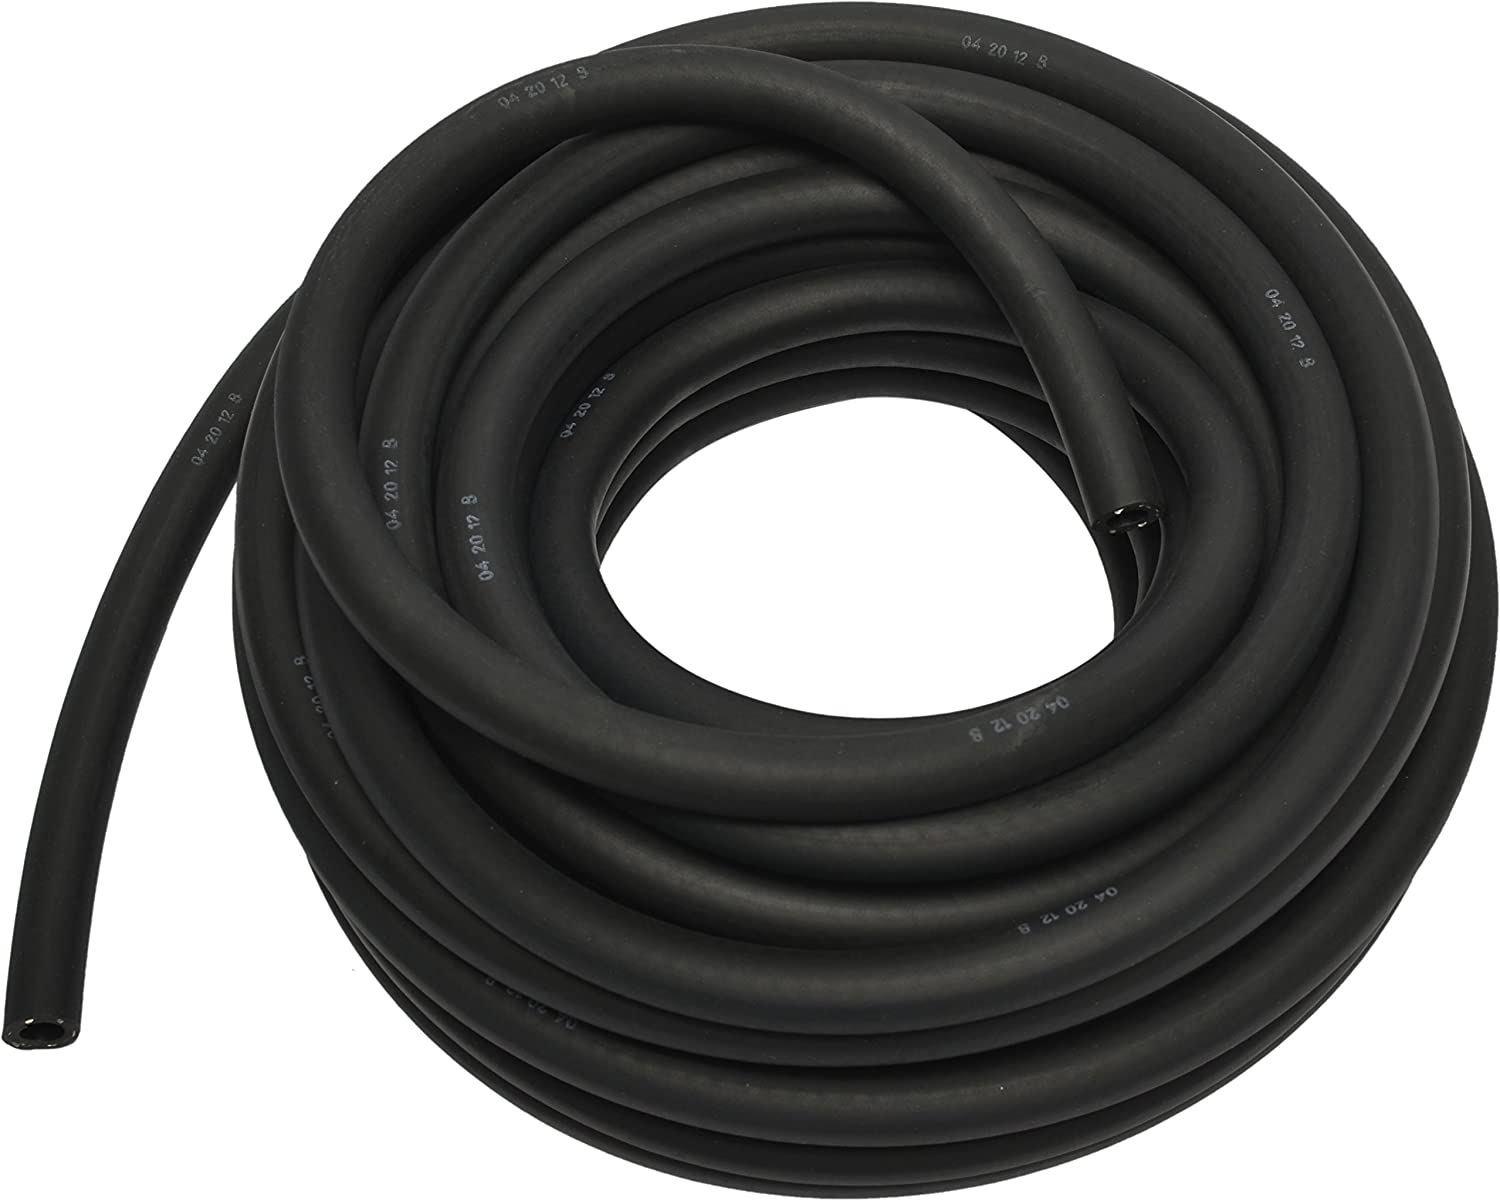 Continental Elite 65004 Heater Hose